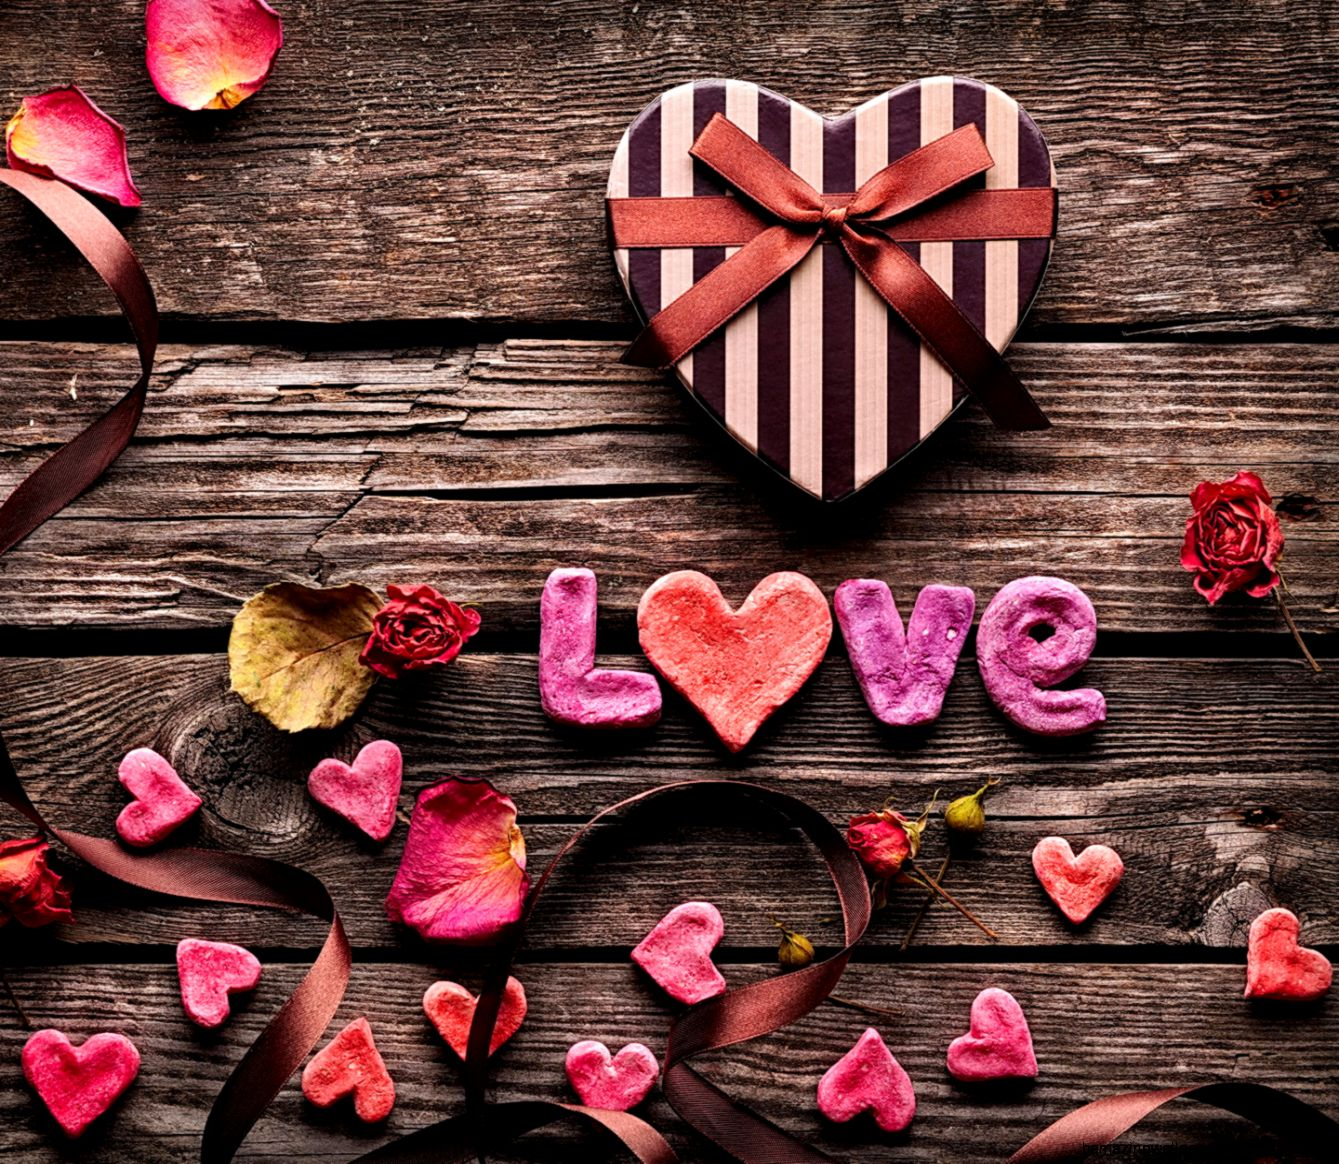 love wallpapers for mobile phones | amazing wallpapers